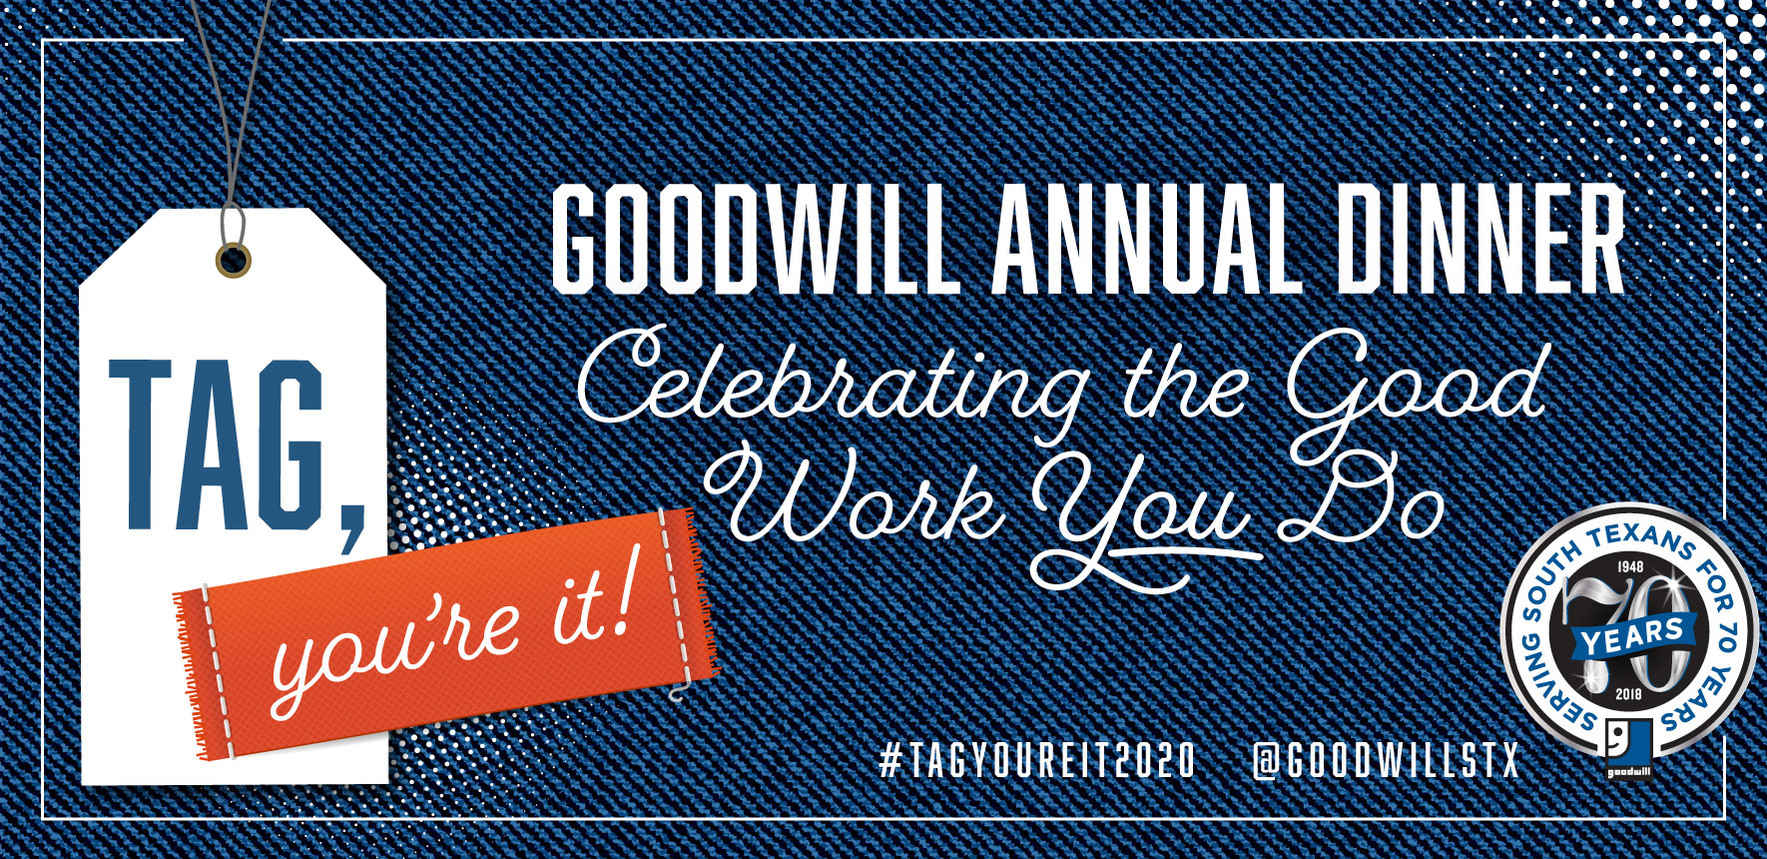 71st Annual Goodwill Dinner image